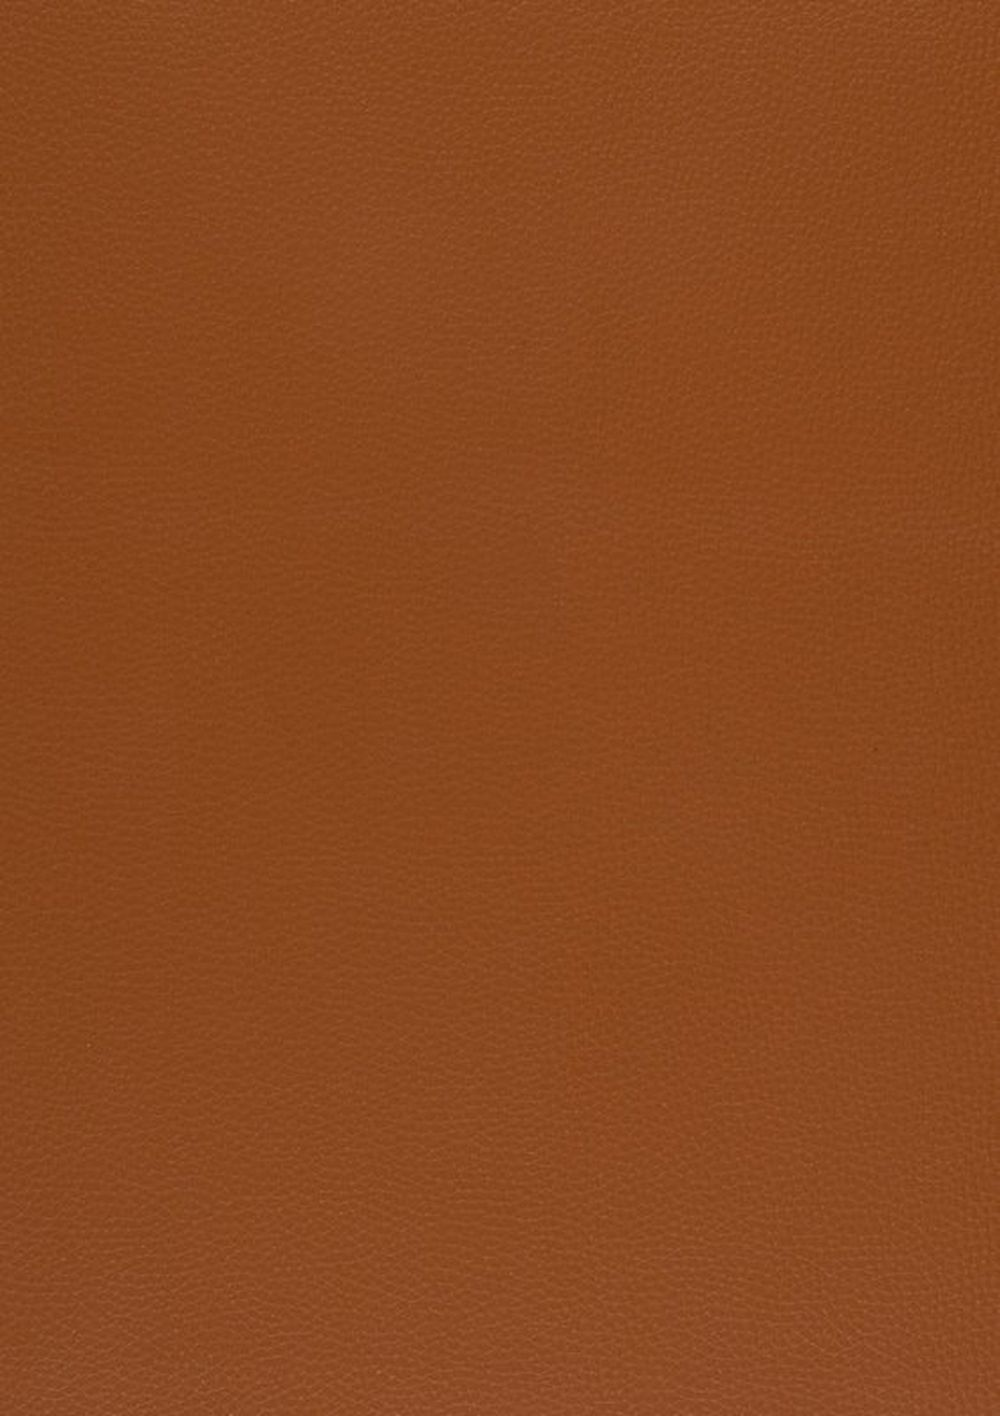 Photo of the fabric Endure FR-One Cognac swatch by FR-One. Use for Upholstery Medium Duty, Accessory. Style of Plain, Texture